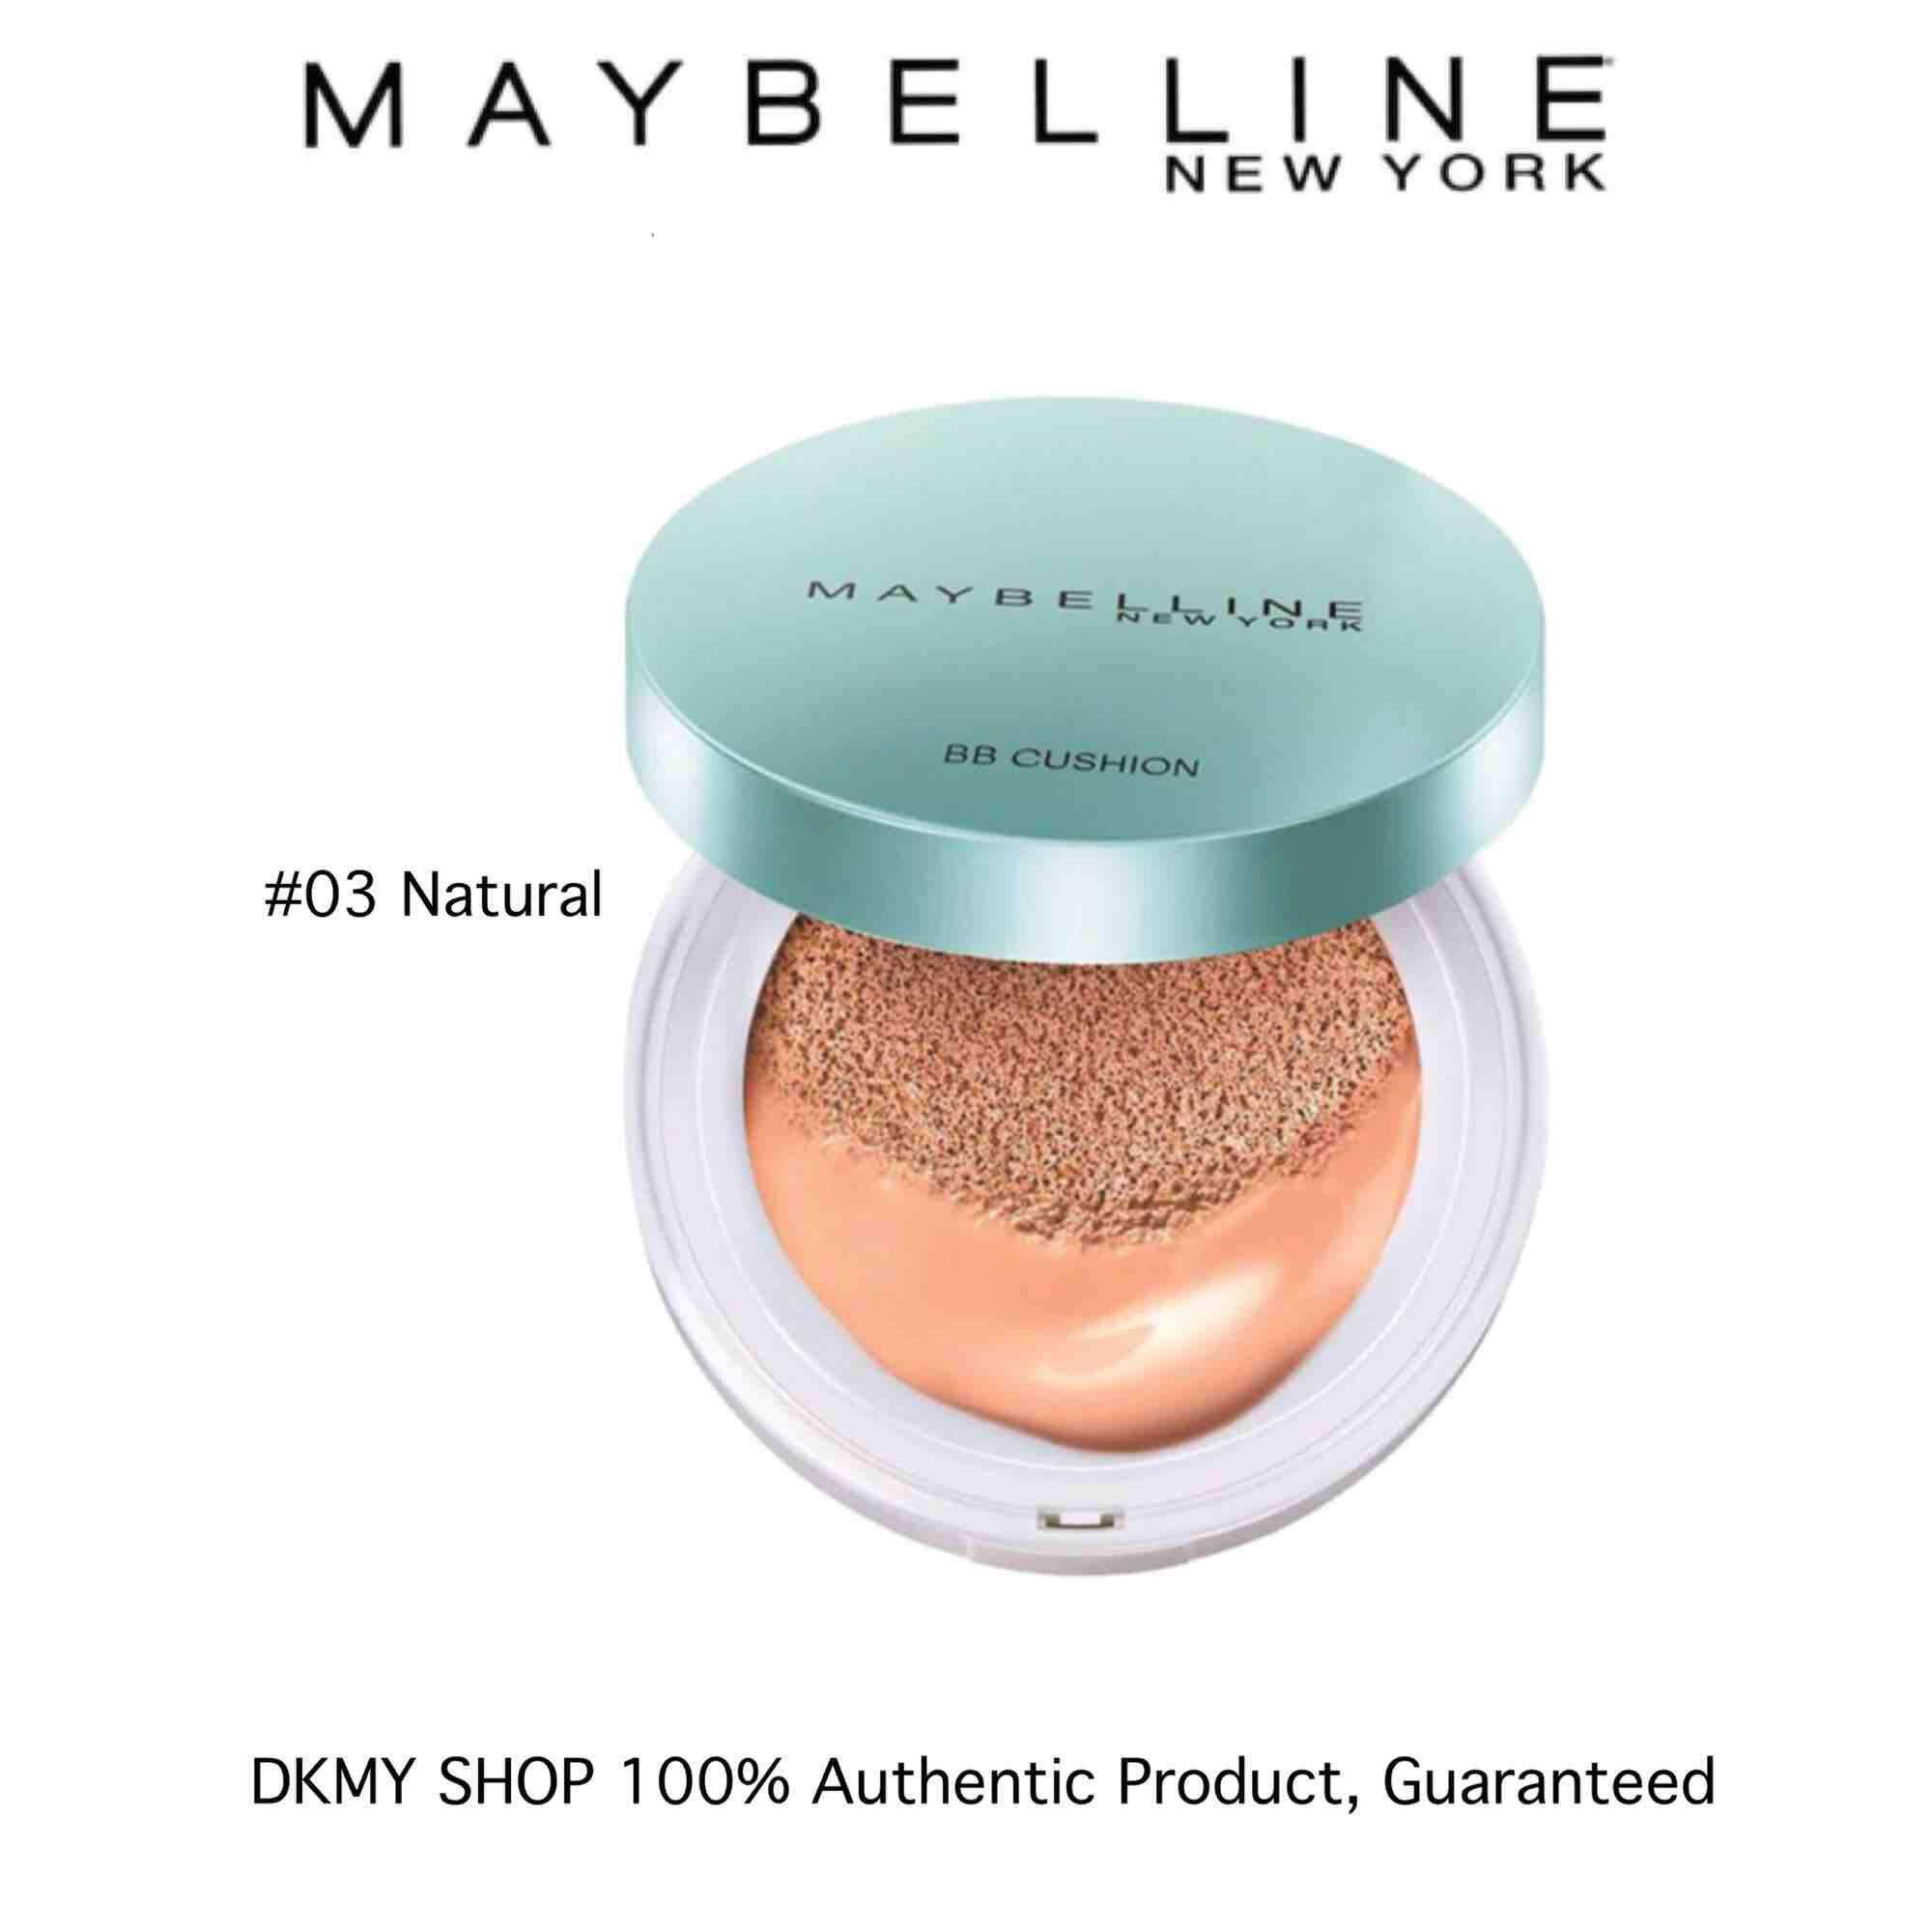 Features Maybelline Super Bb Cushion Ultra Cover Spf50 Pa 14g Dan Ac Clean Up Natural Beige Fresh Matte Spf 25 03